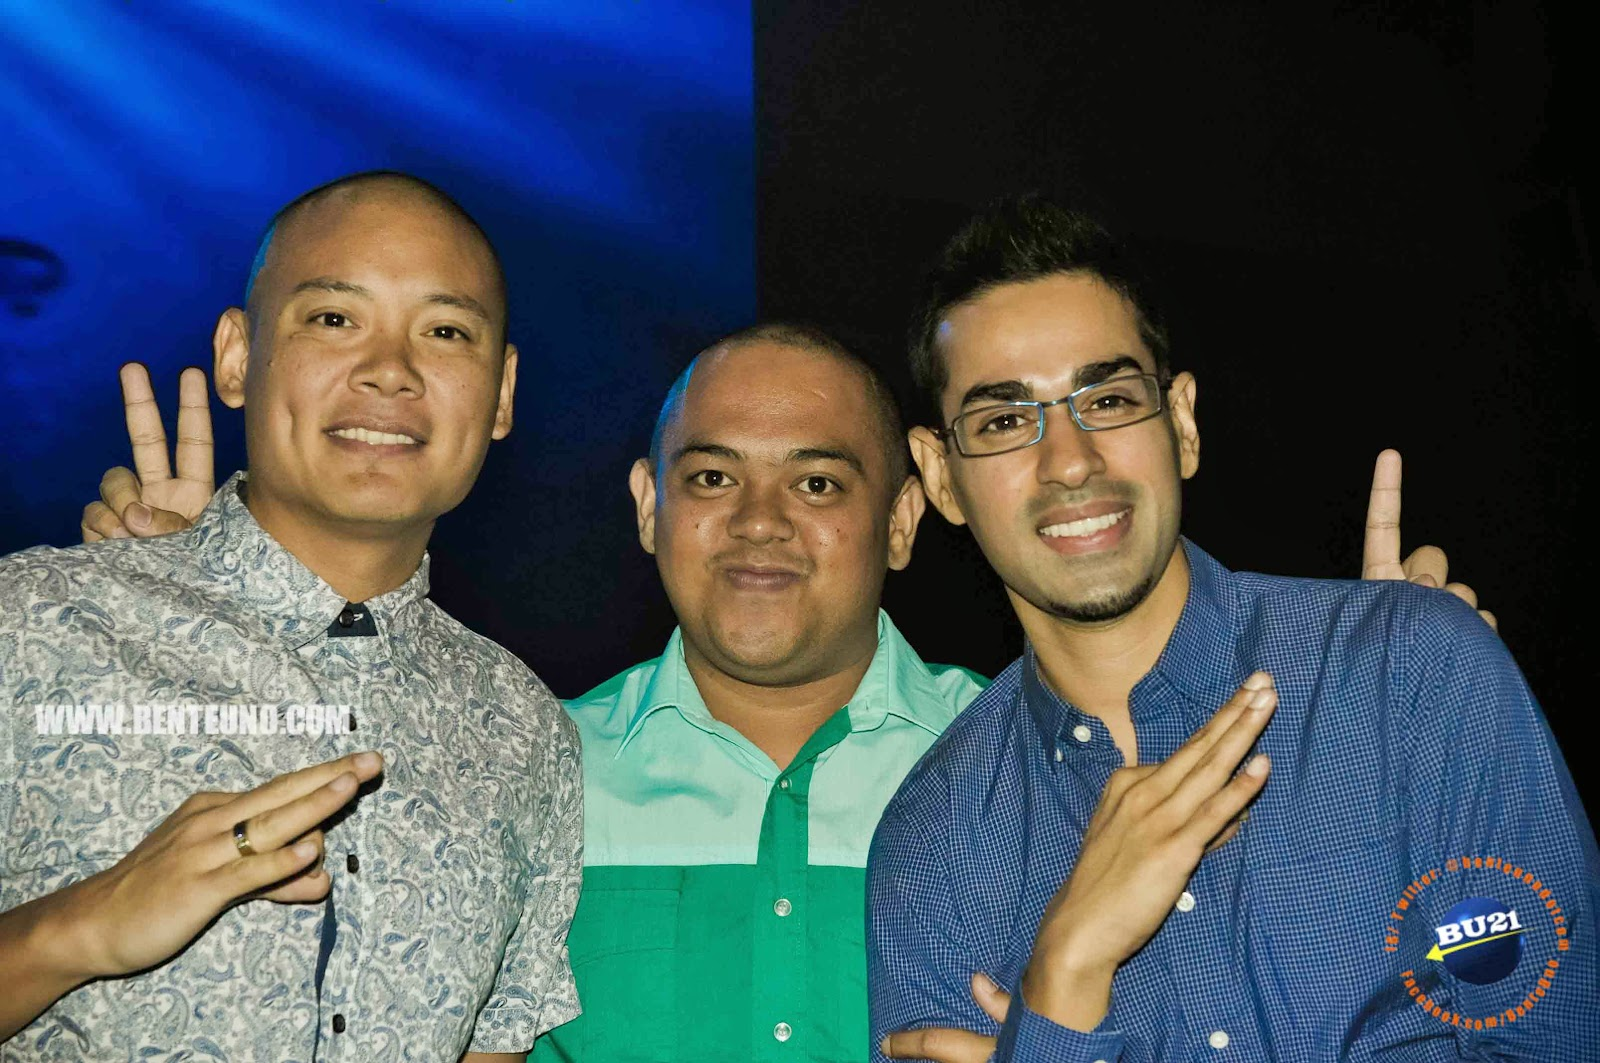 Boys Night Out minus Slick Rick spotted at the Launch of Galaxy S5